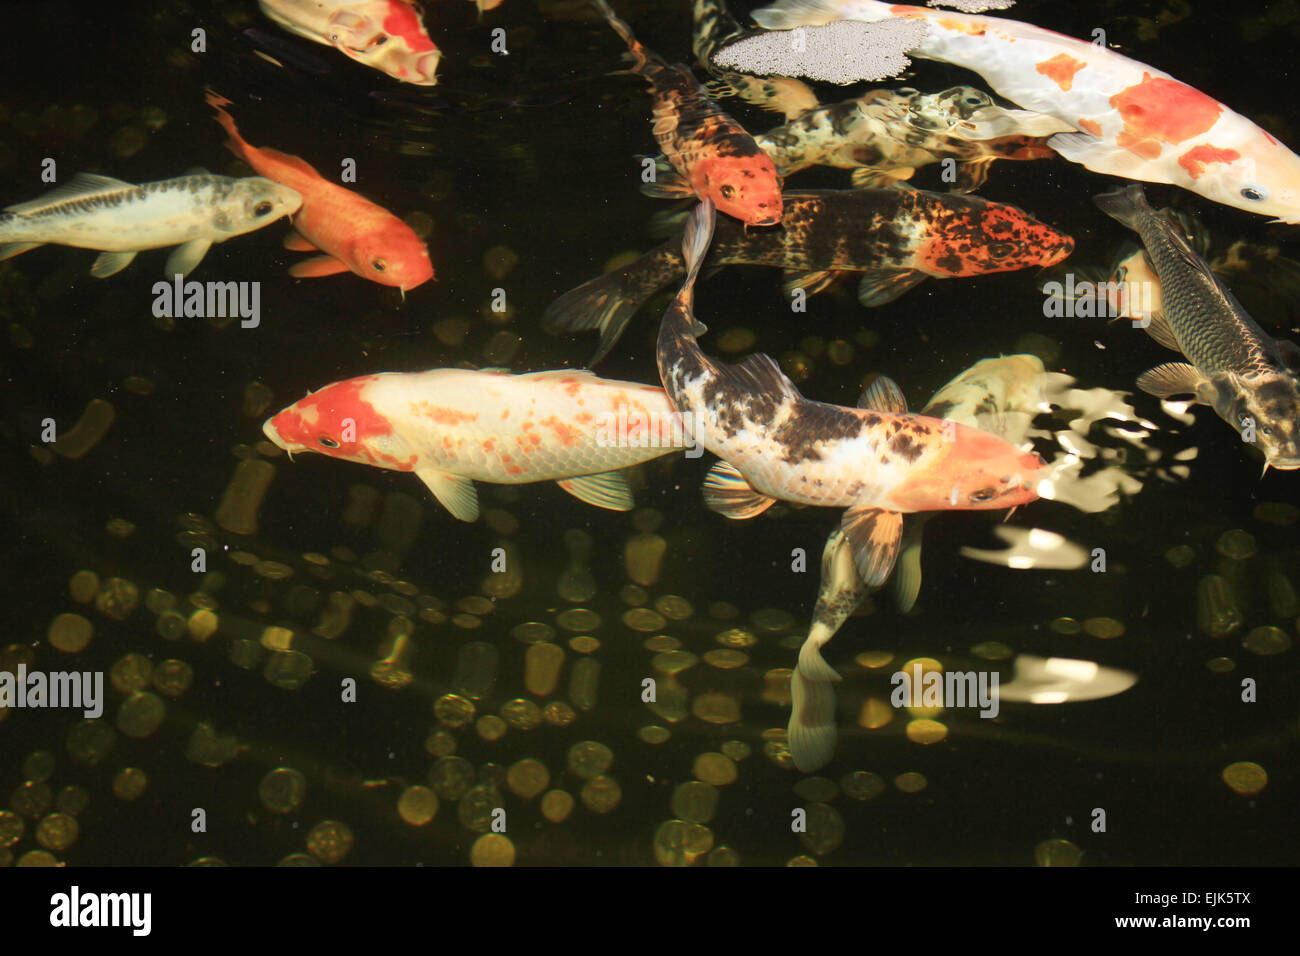 Fish aquarium and good luck - Koi Carps Fish Japanese Swimming In Aquarium Red Decorative Fishes And Coins In Holding Tank Symbols Of Good Luck And Prosperi